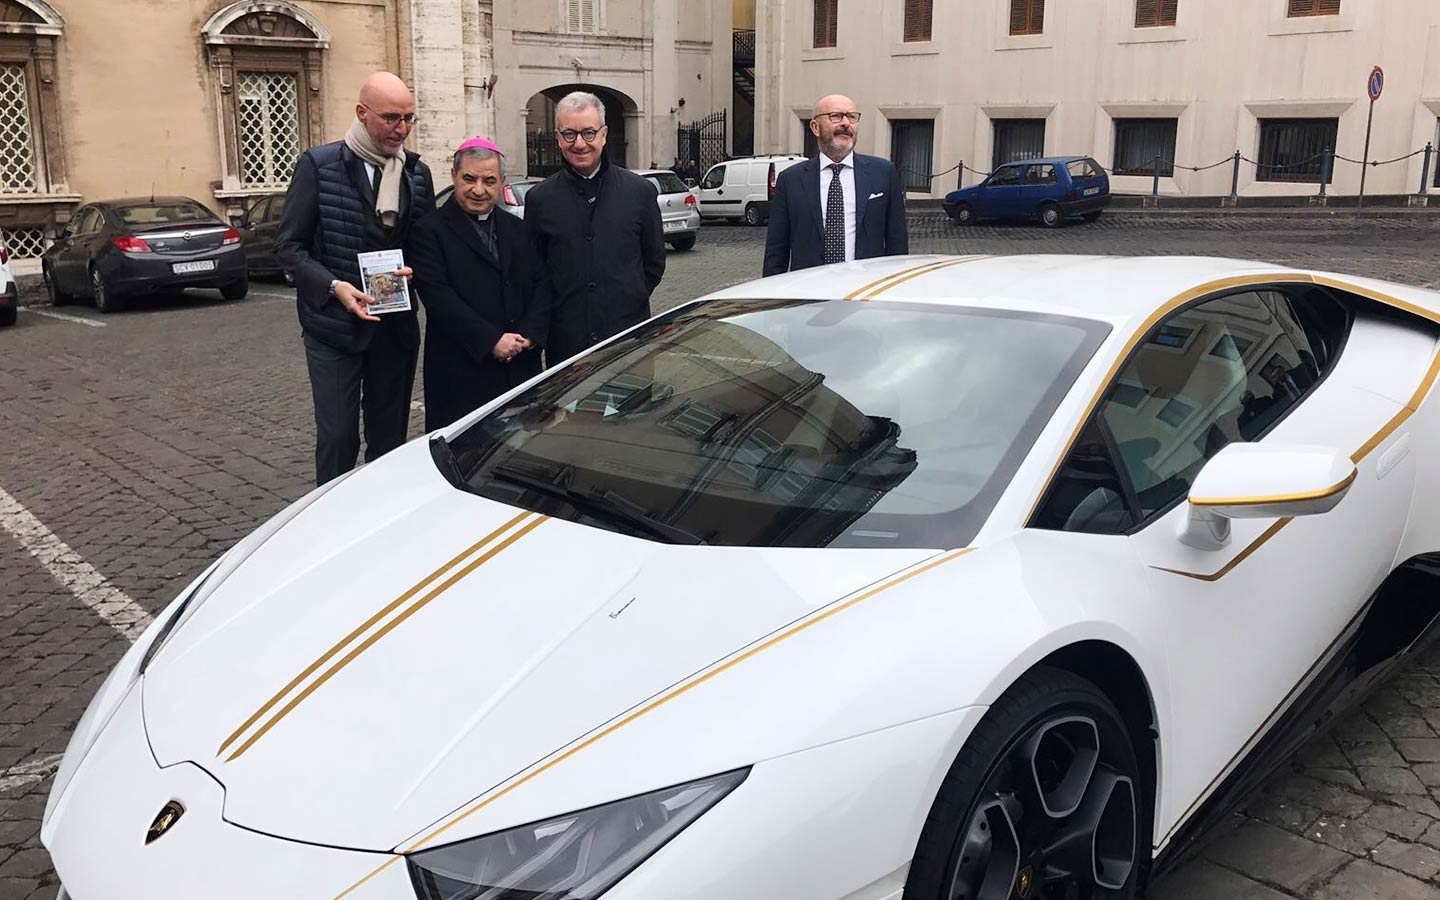 """Patriarch Sako on the donated Lamborghini: """"We thank Pope Francis for the fatherly gesture"""""""